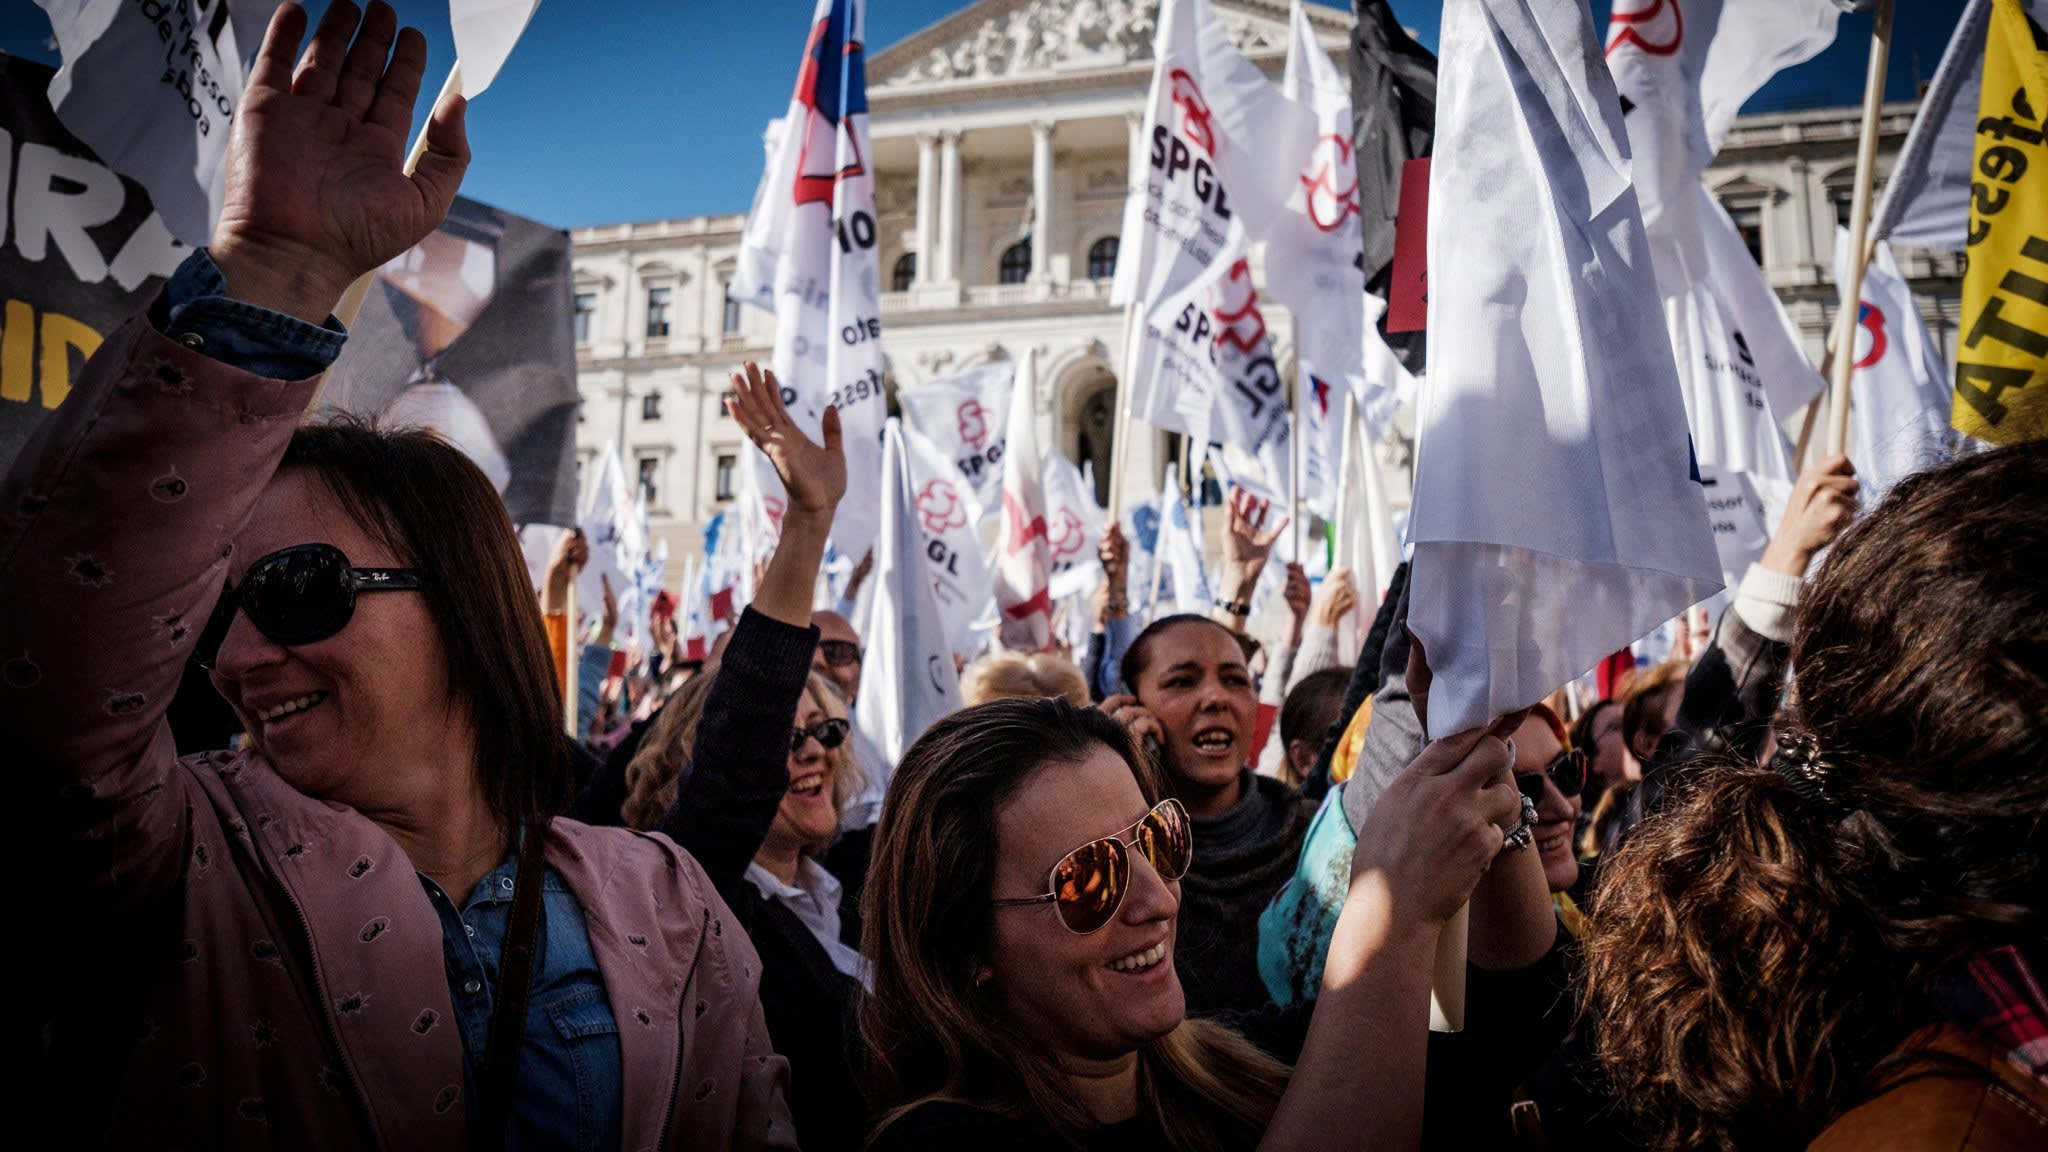 Portugal confronts limits of anti-austerity drive